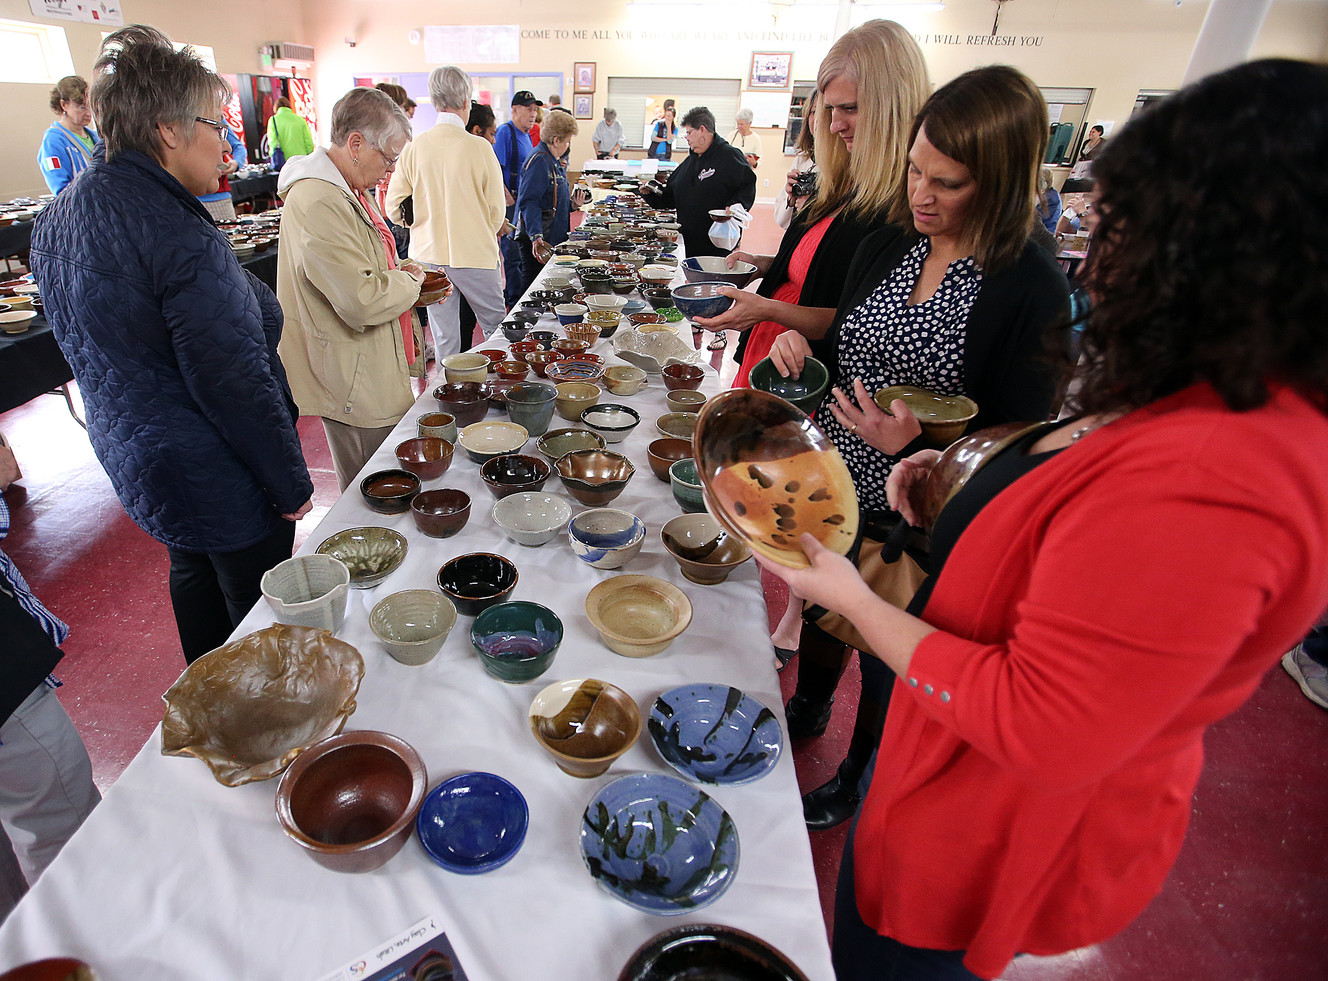 local soup kitchen sells empty bowls to feed the homeless | ksl